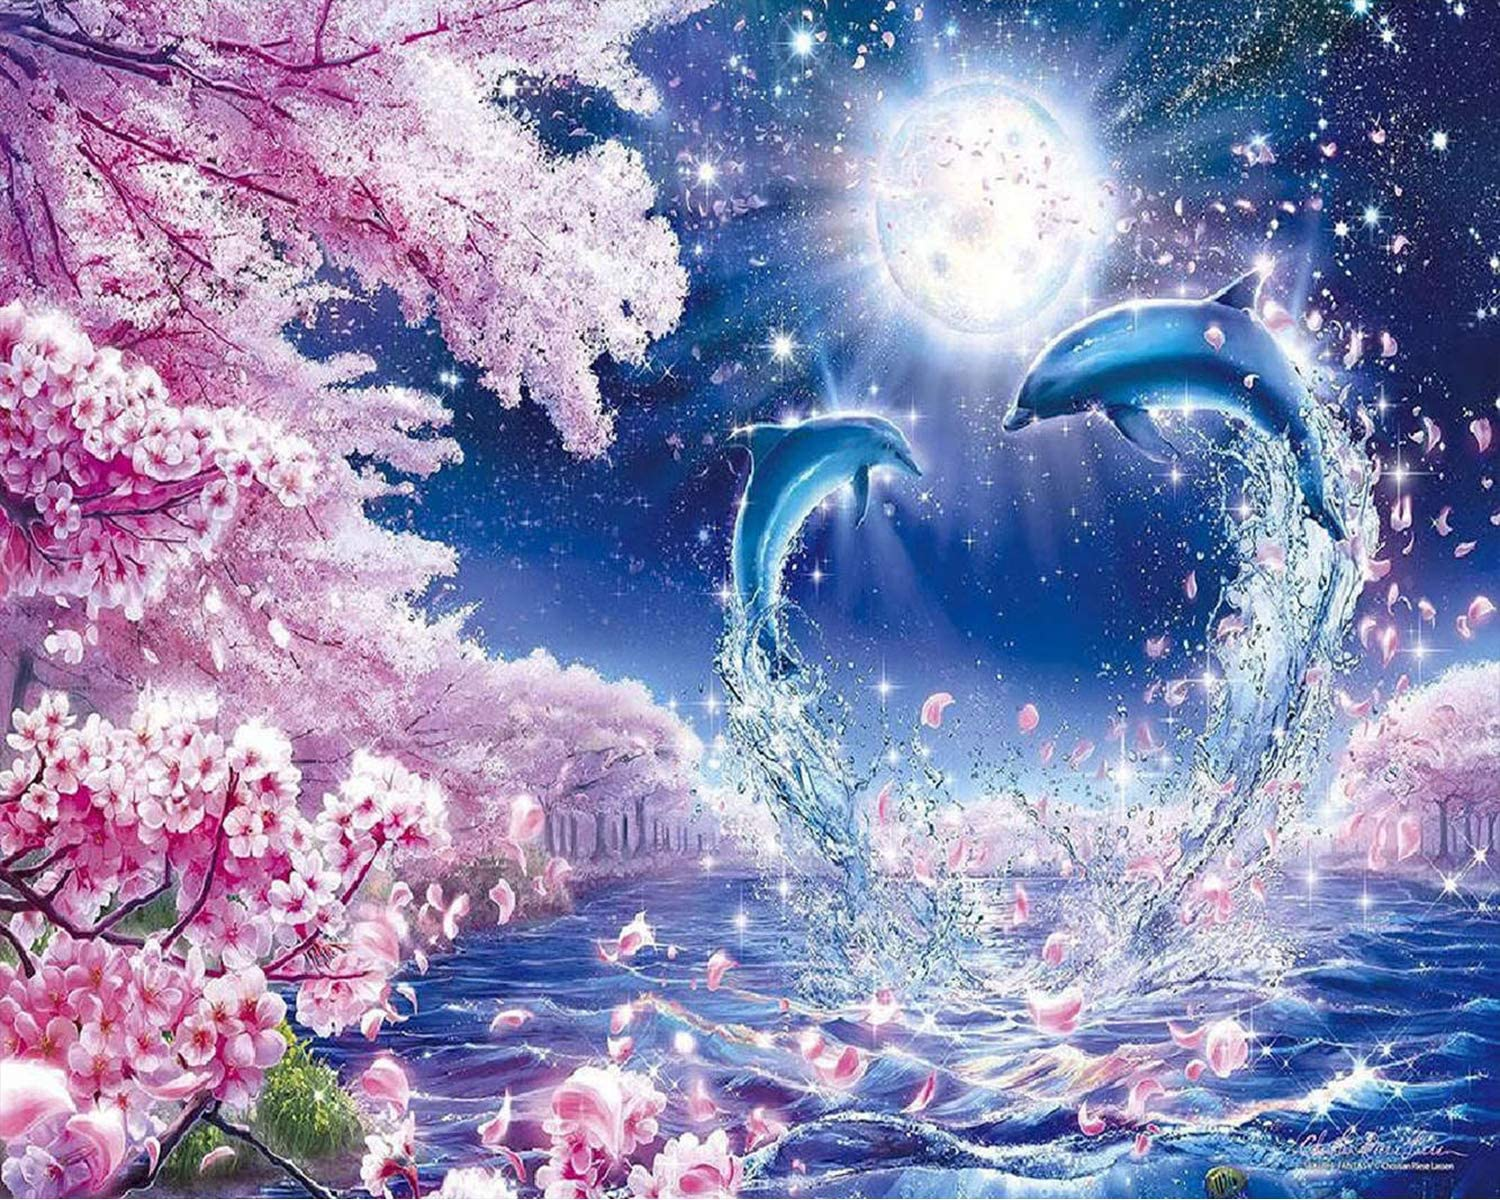 Ritoti DIY 5D Diamond Painting Kits for Adults Beginners Full Drill Crystal Rhinestone Pictures Arts Craft for Home Wall Decor(11.81x15.75 Inch,Romantic Dolphin Love)